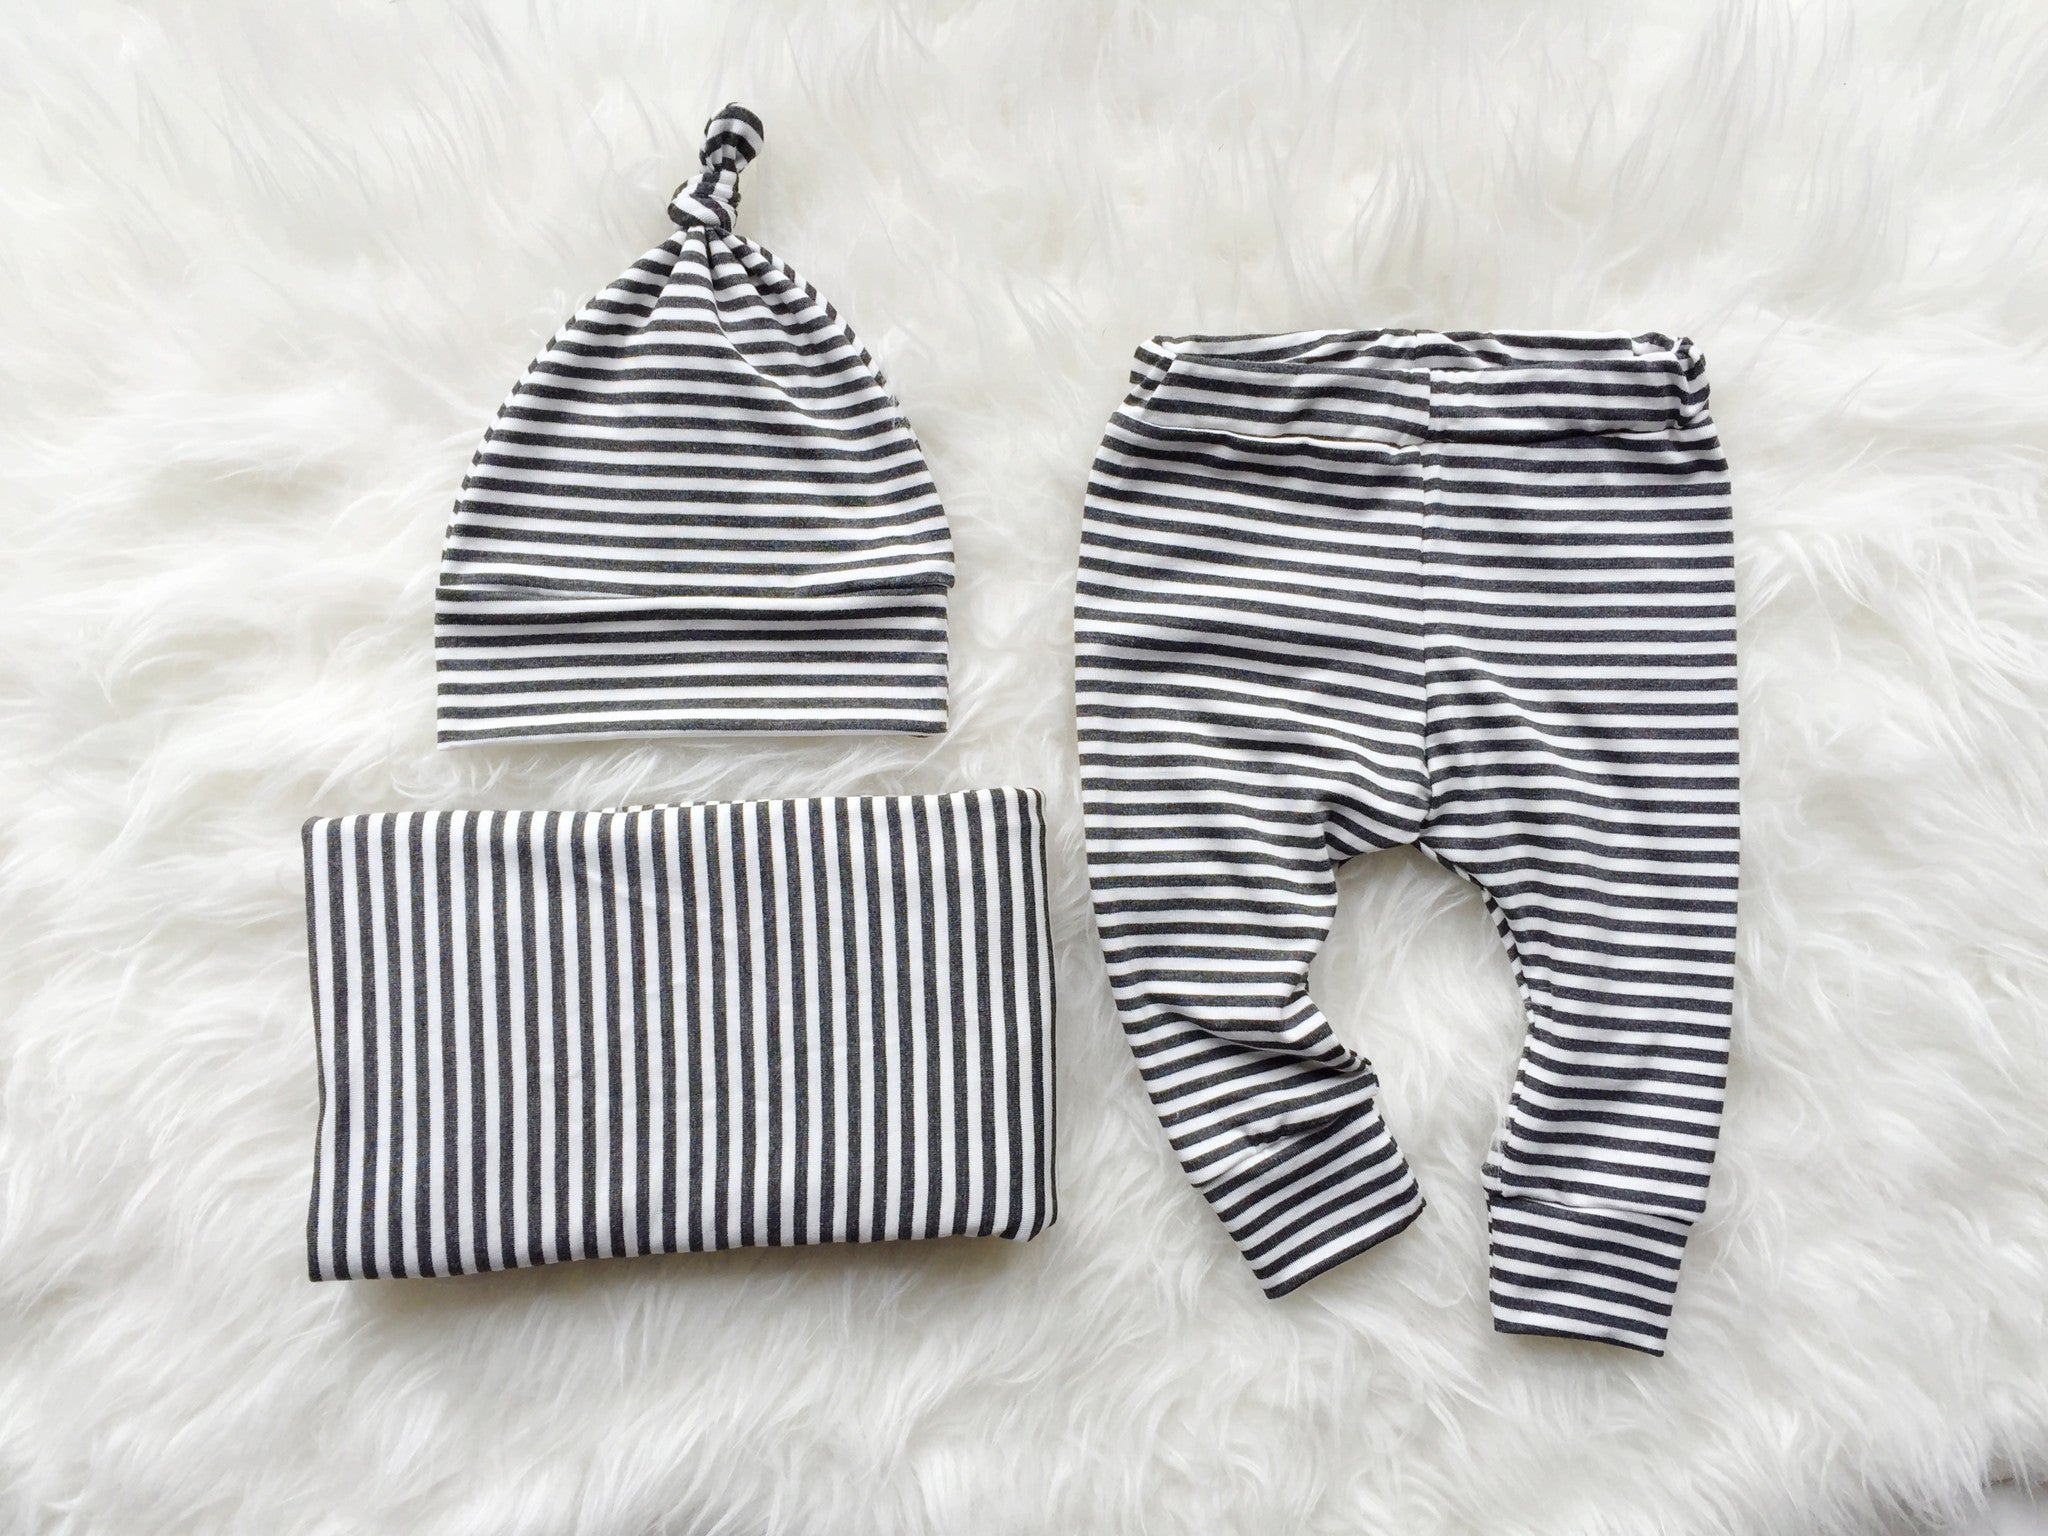 Baby Basics Bundle in Charcoal Stripe - Alexandra Rose Handmade